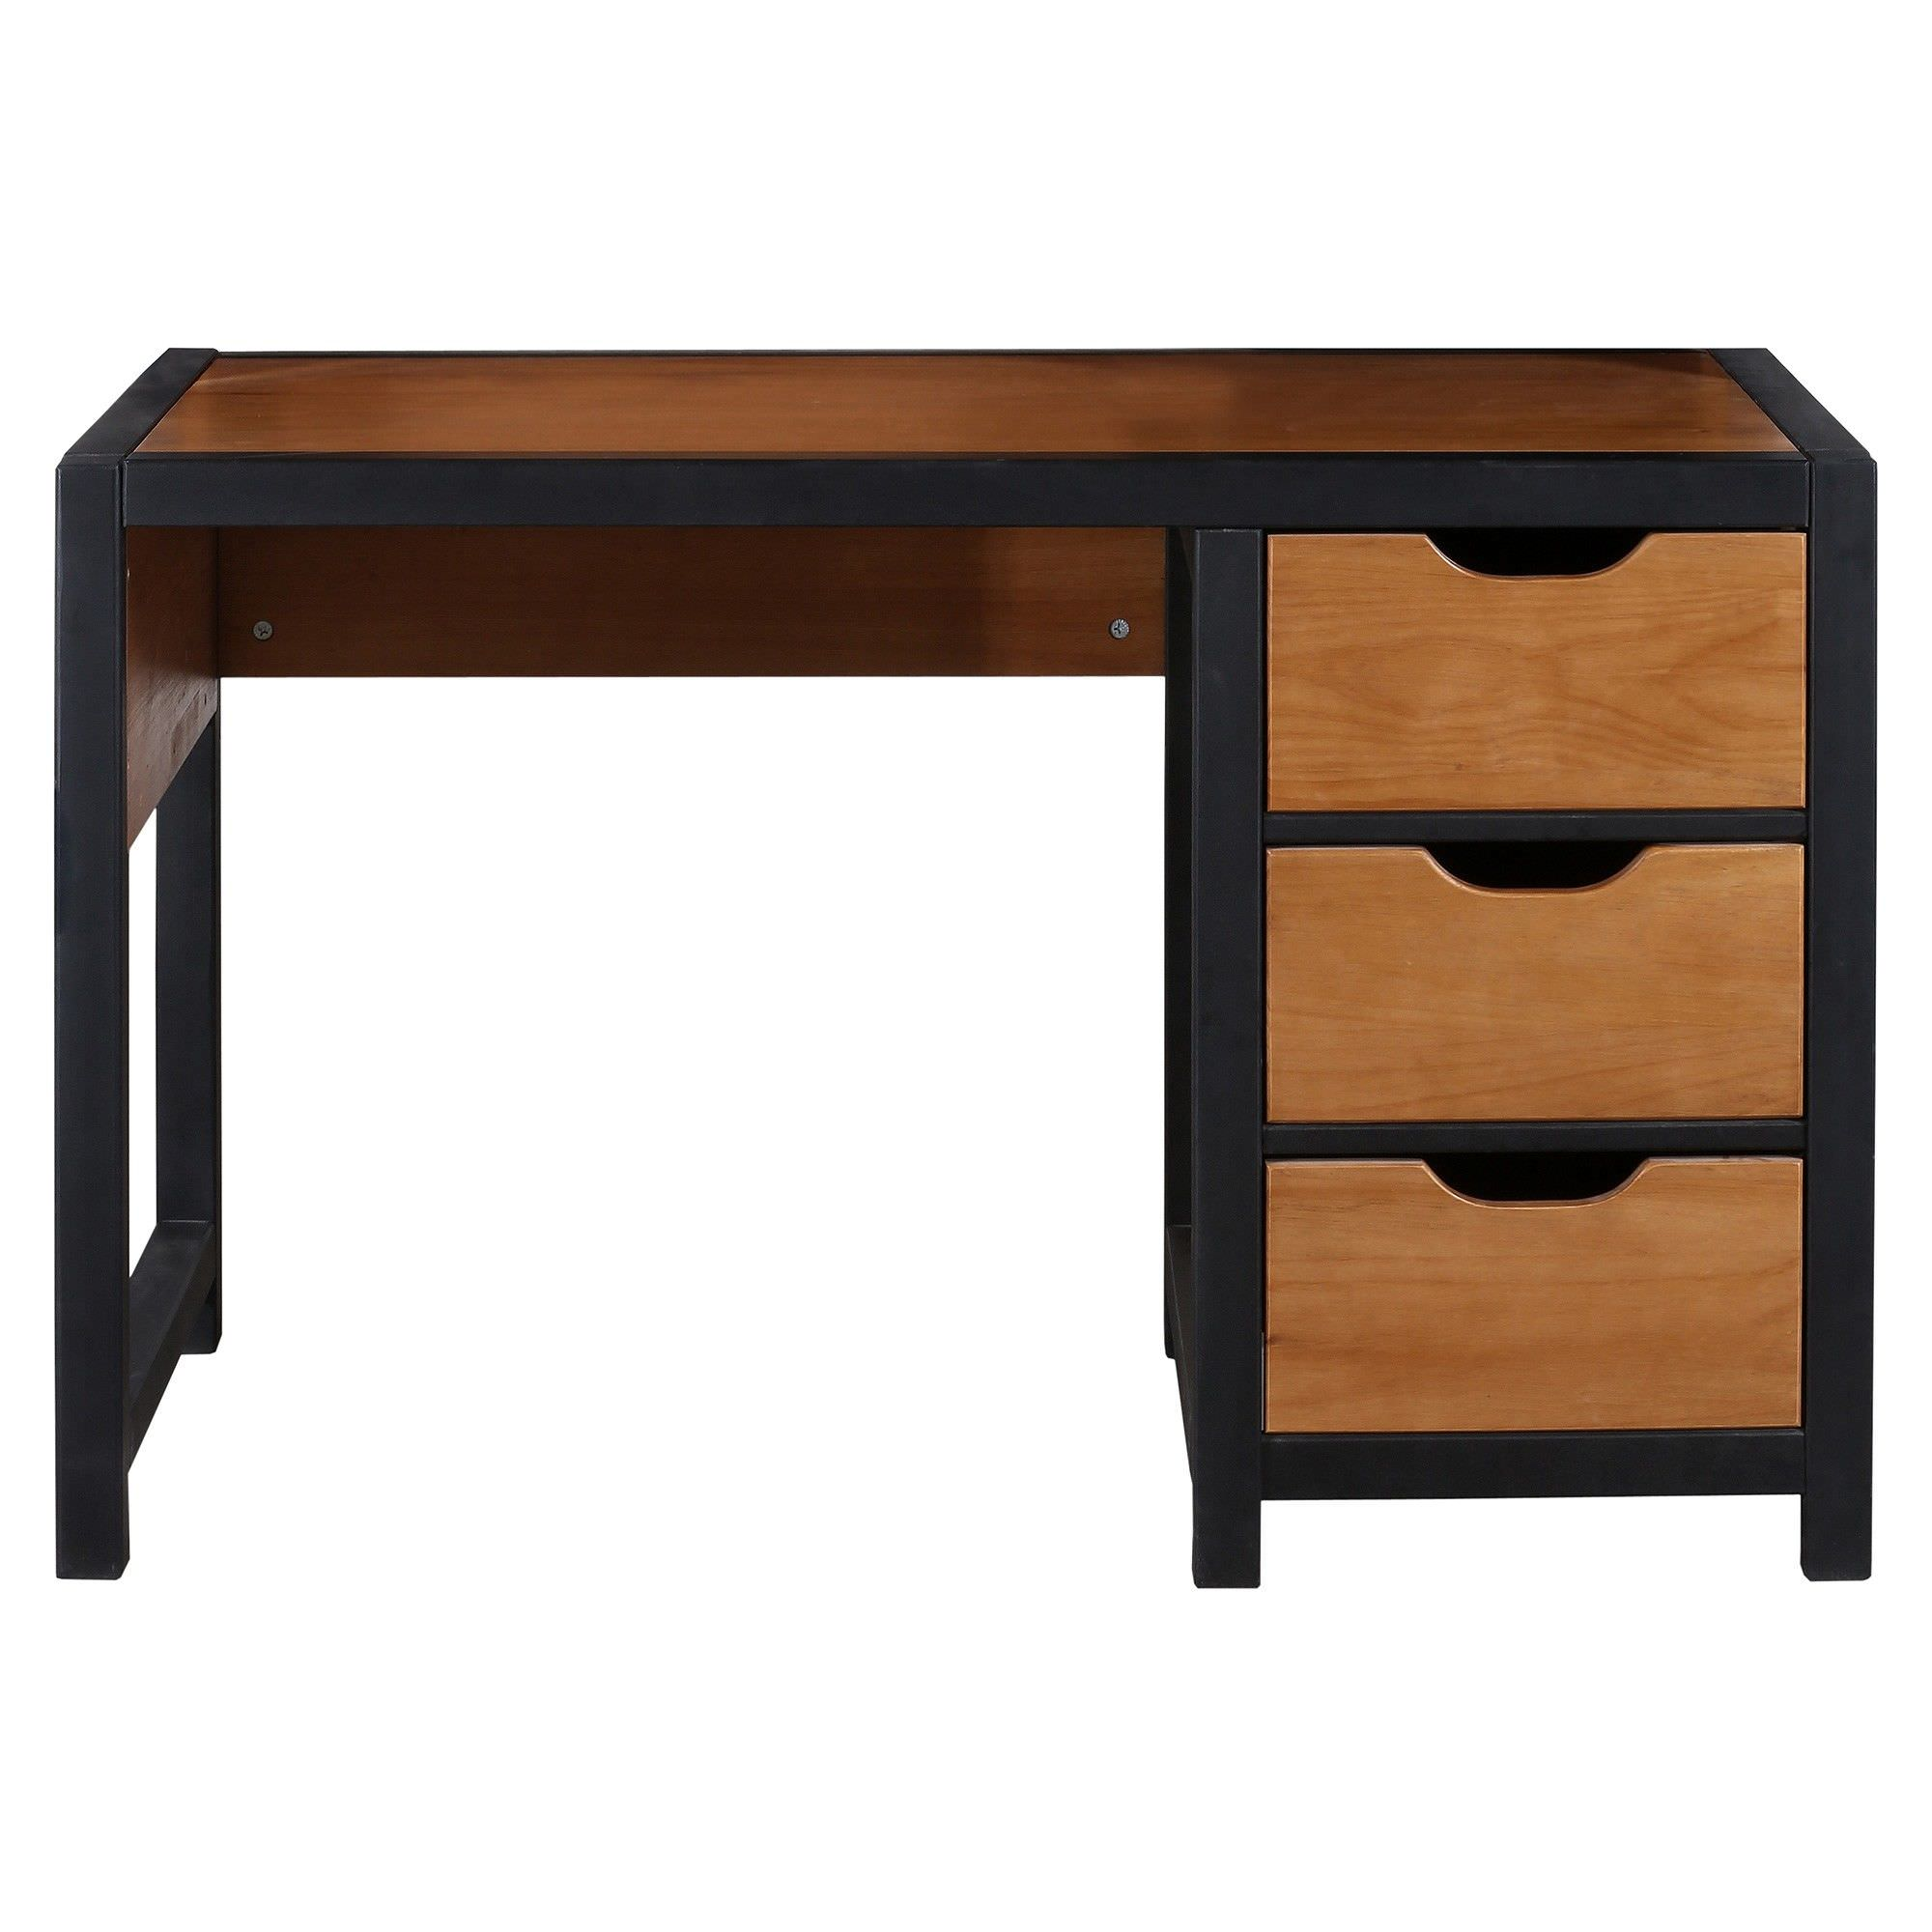 furniture with cadell d storage desk home fortytwo study cor